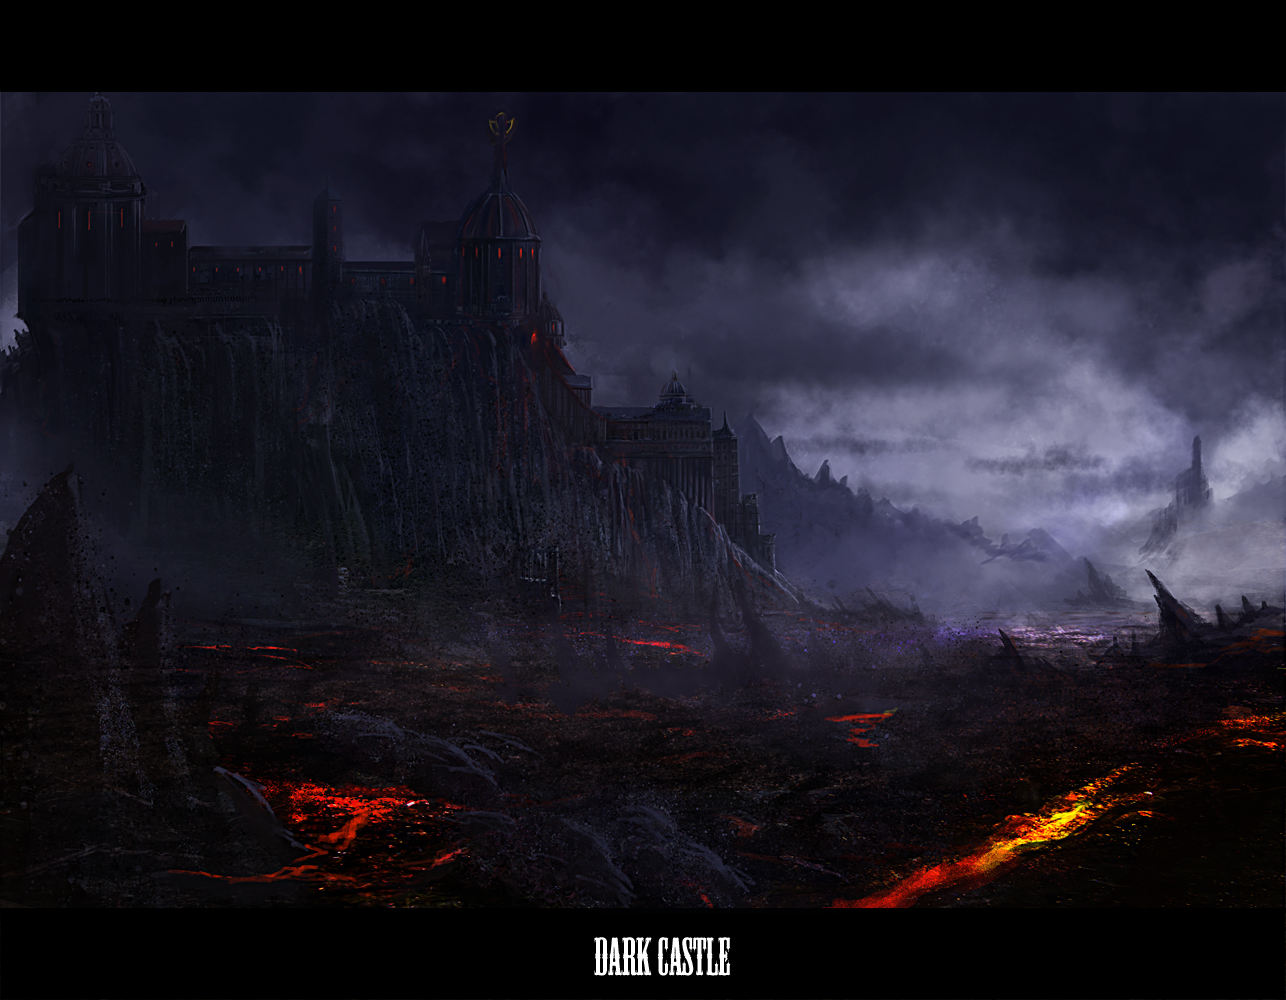 Dark Castle Wallpaper And Background Image - Dark Castle Photos Fantasy , HD Wallpaper & Backgrounds